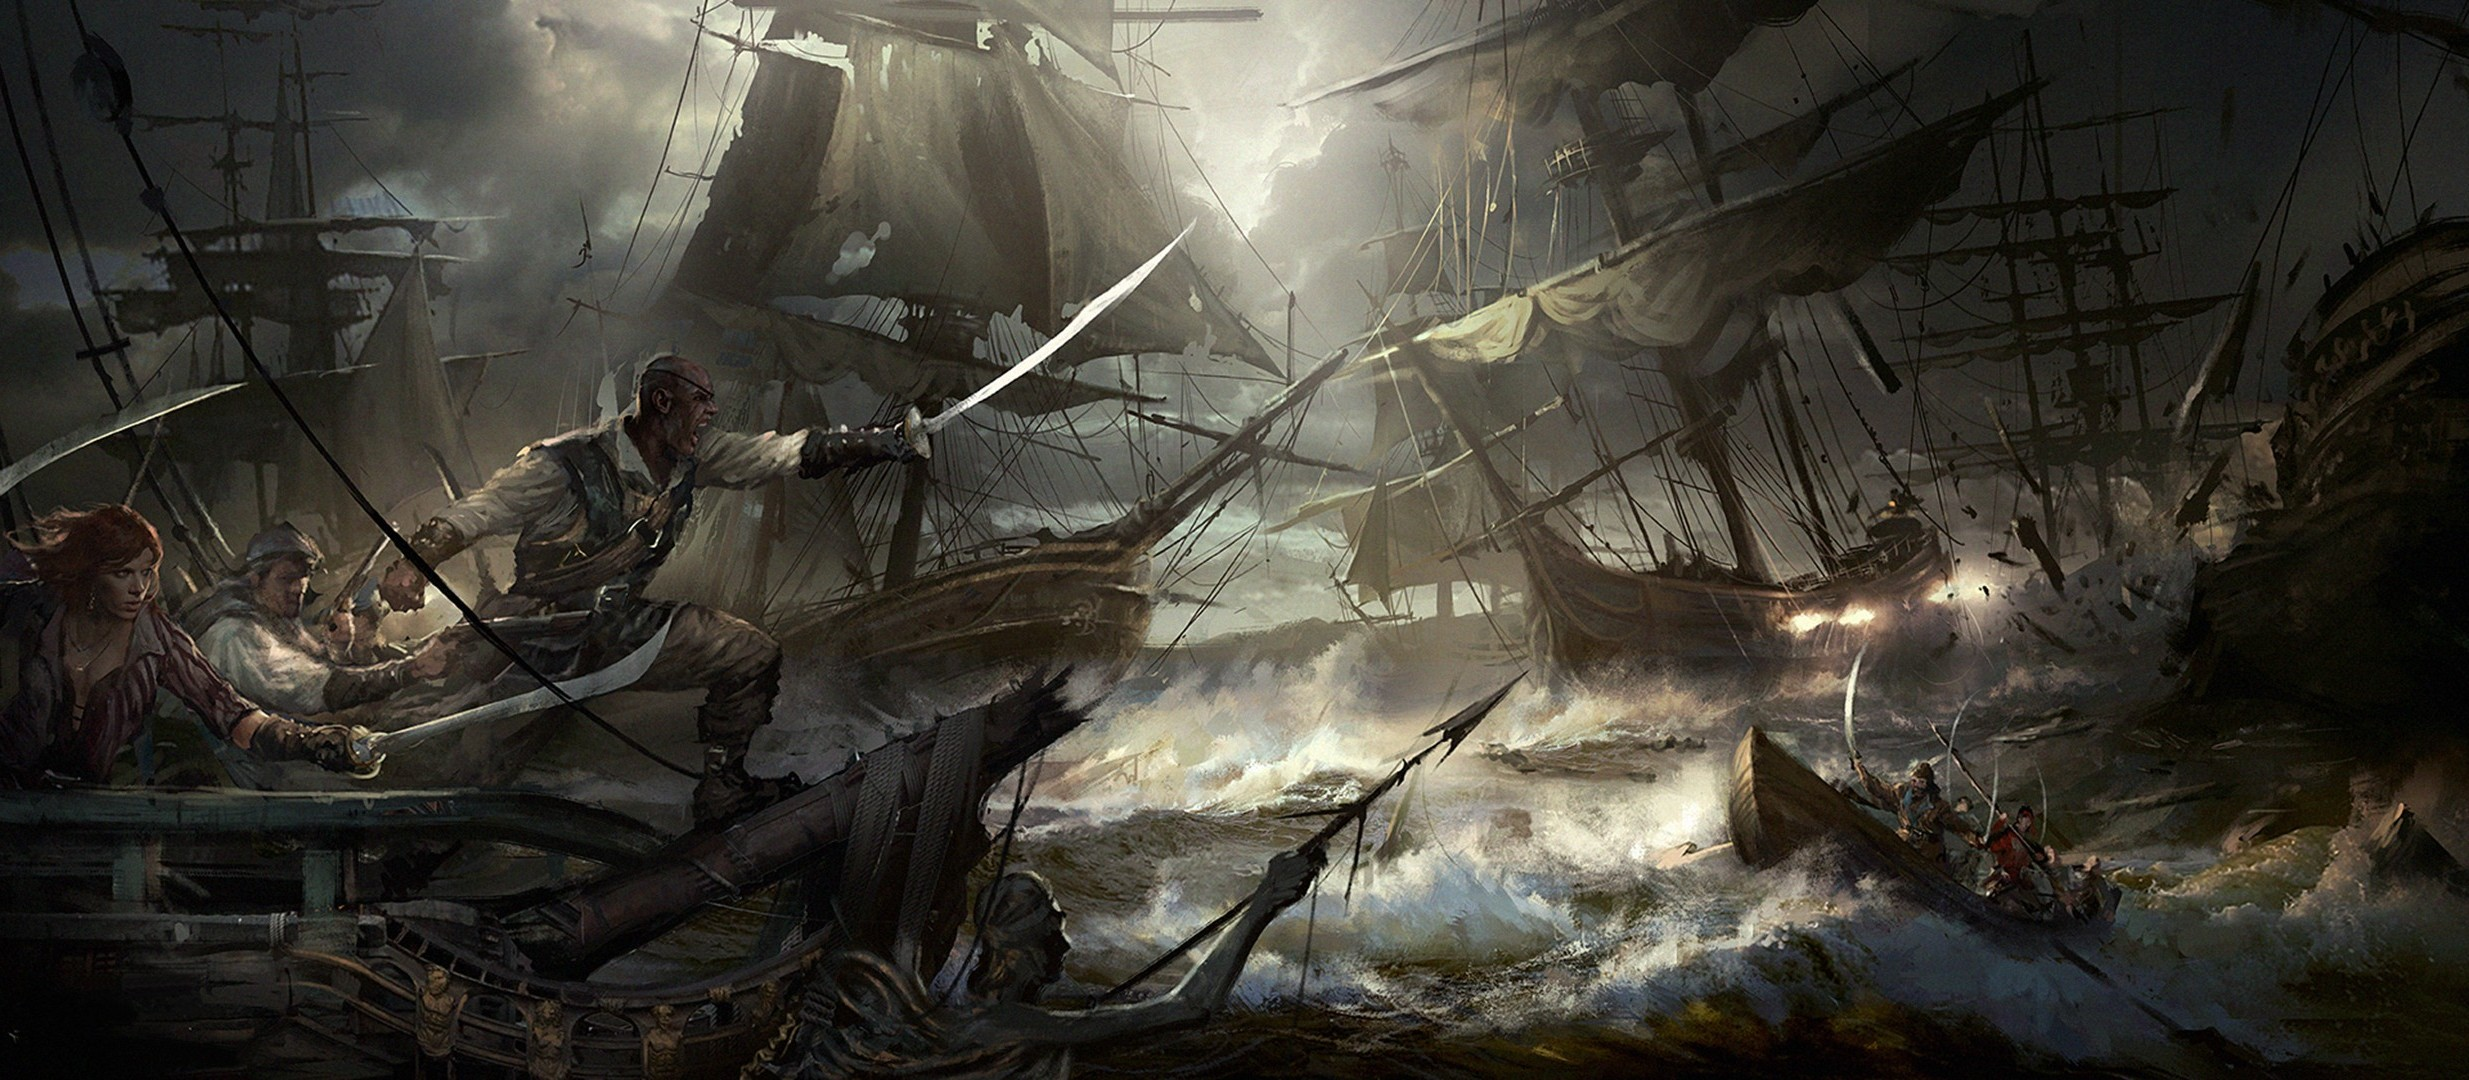 Really Cool 3d Wallpapers Artwork Fantasy Art Ocean Battle Wallpapers Hd Desktop